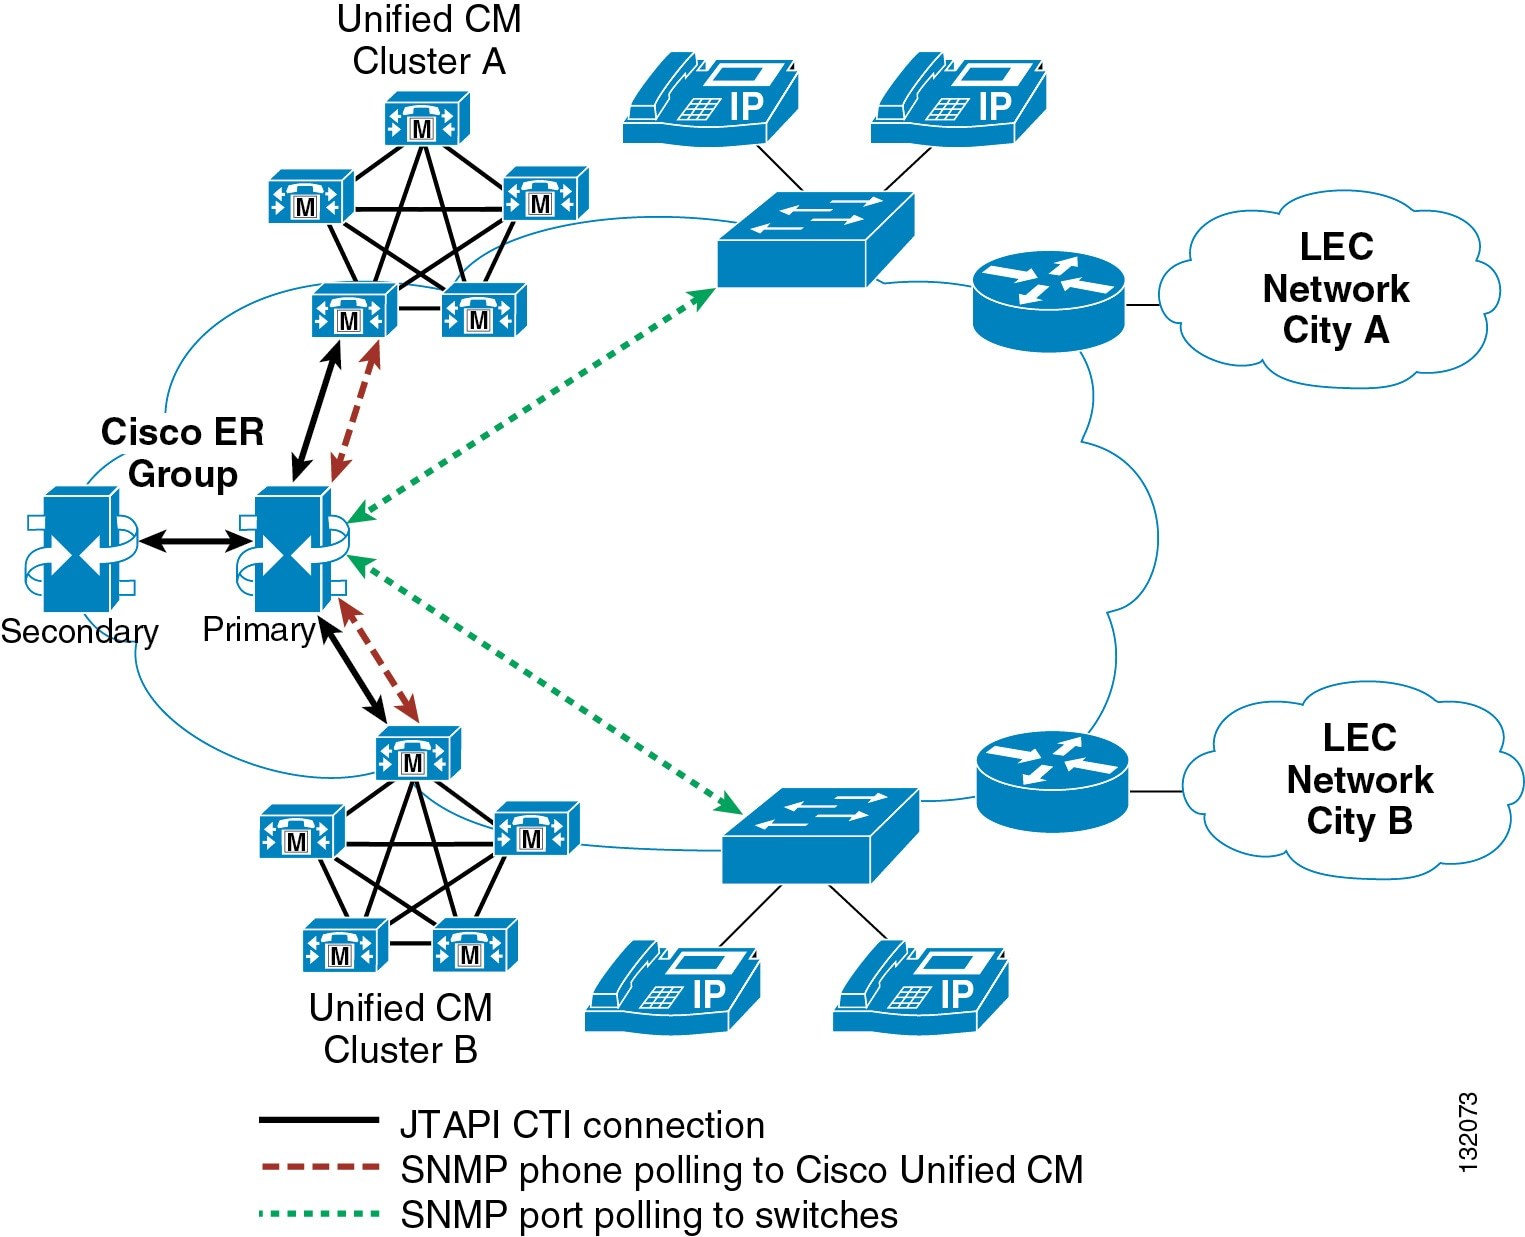 Cisco Collaboration System 11x Solution Reference Network Designs Police Department Wiring Diagram Figure 15 3 A Single Emergency Responder Group Connected To Two Unified Cm Clusters